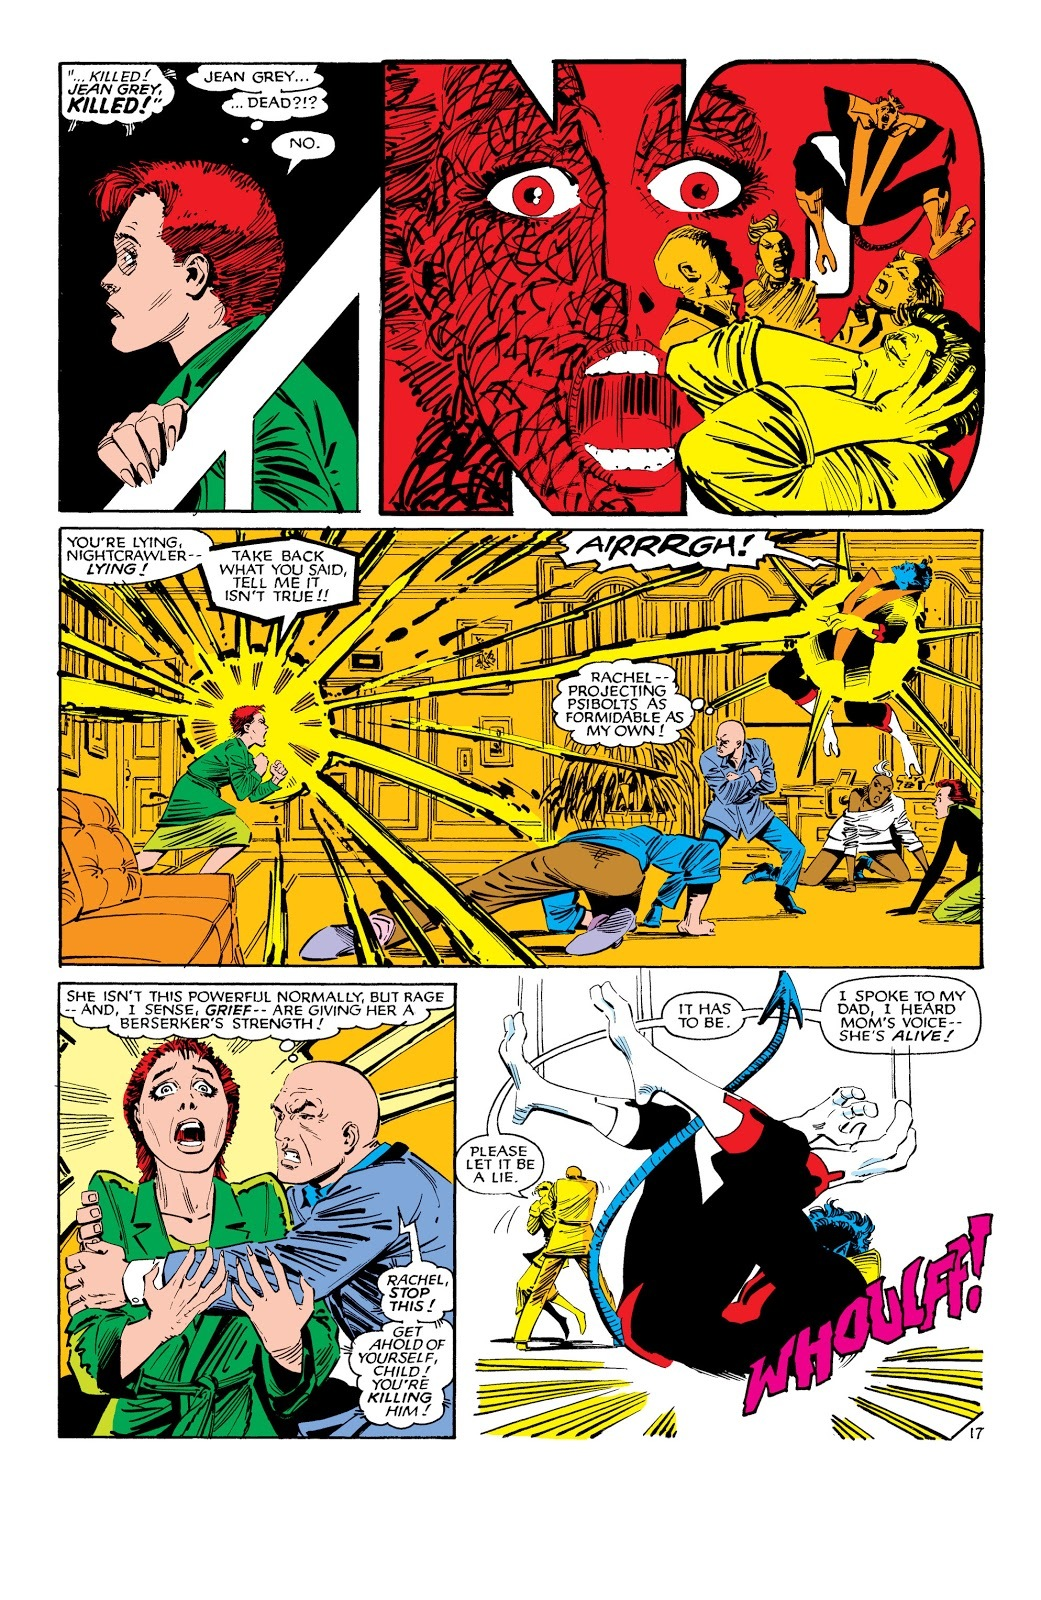 Shortly after arriving in the 616 timeline a 16yr old enraged Rachel unleashes psi bolts on Xavier's level - Uncanny X-Men V1 #188